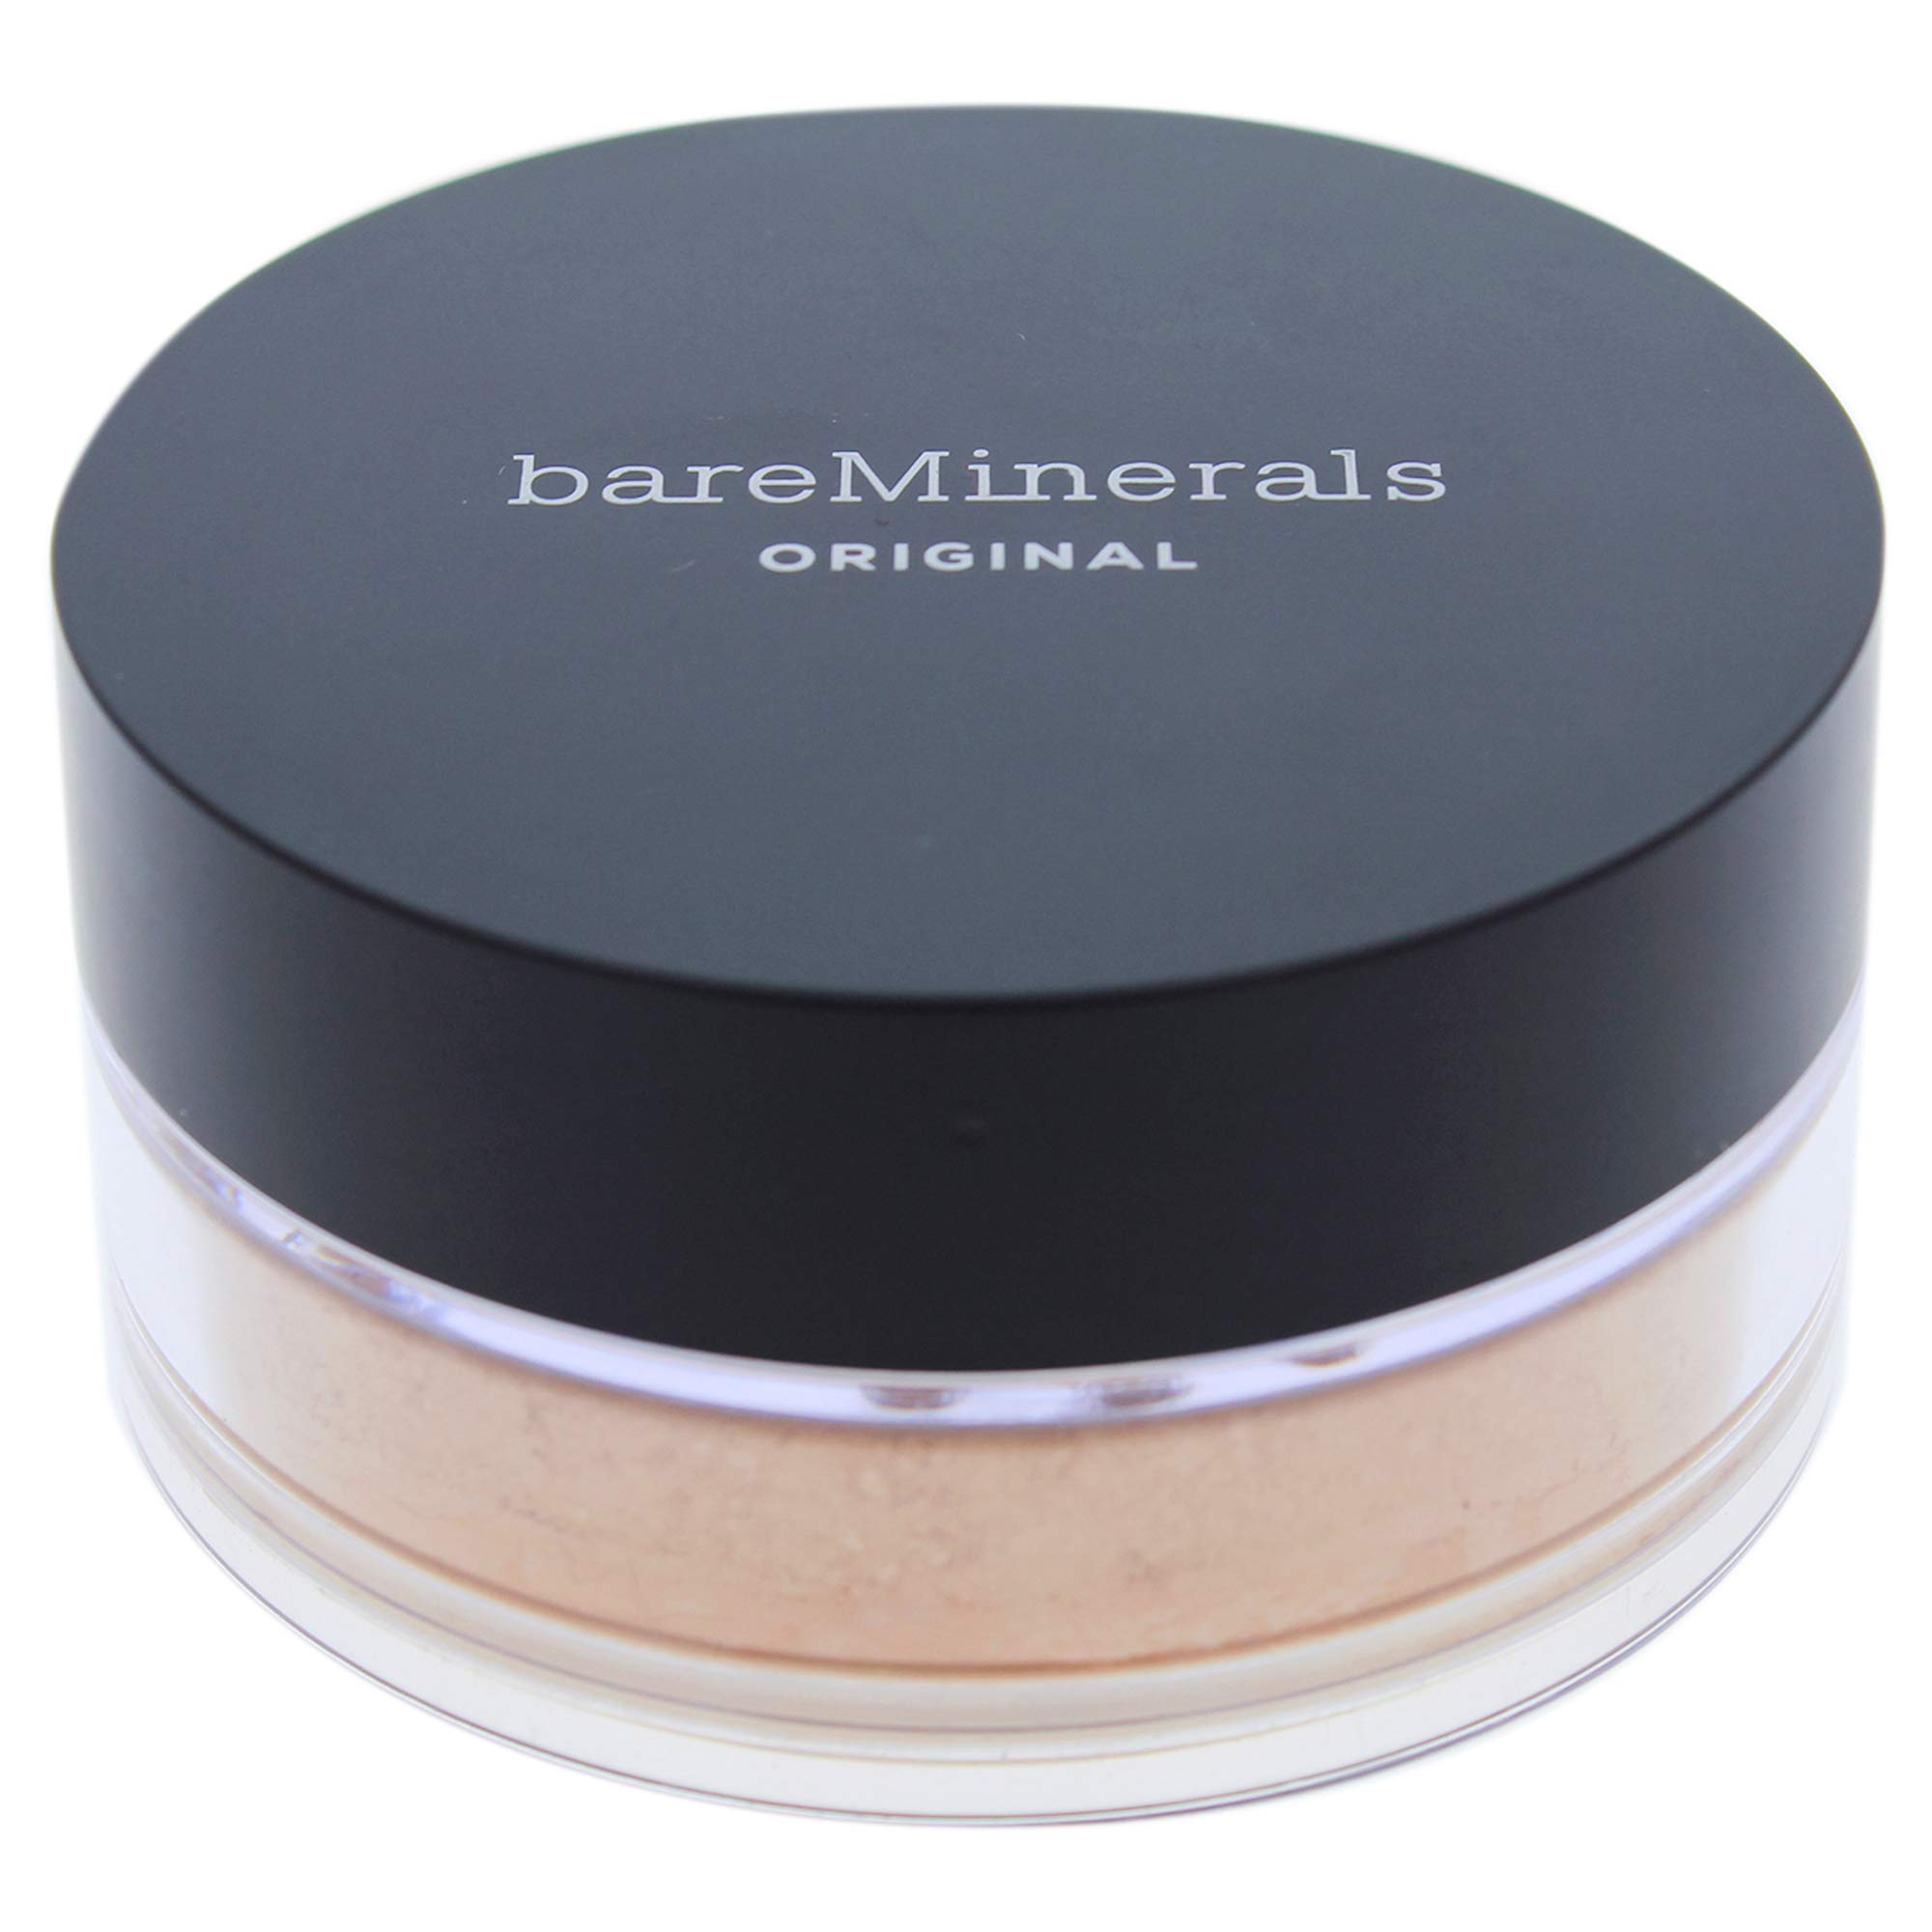 Bare Minerals Original Foundation, Medium Beige, 0.28 Ounce by bare Minerals